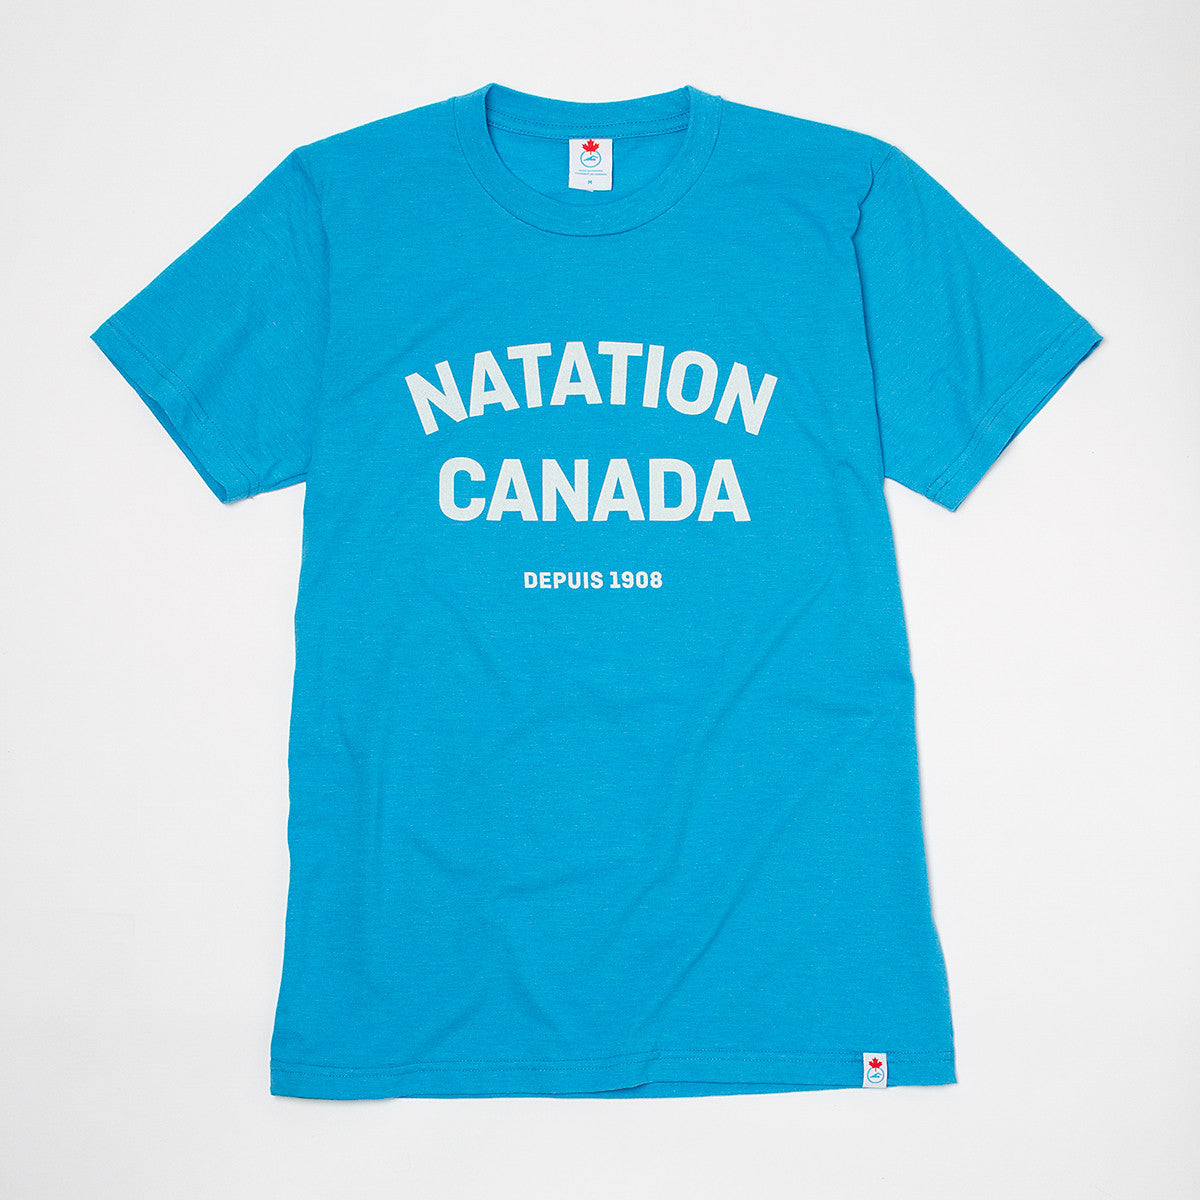 Men's Natation Canada Heather Blue Short Sleeve T-shirt